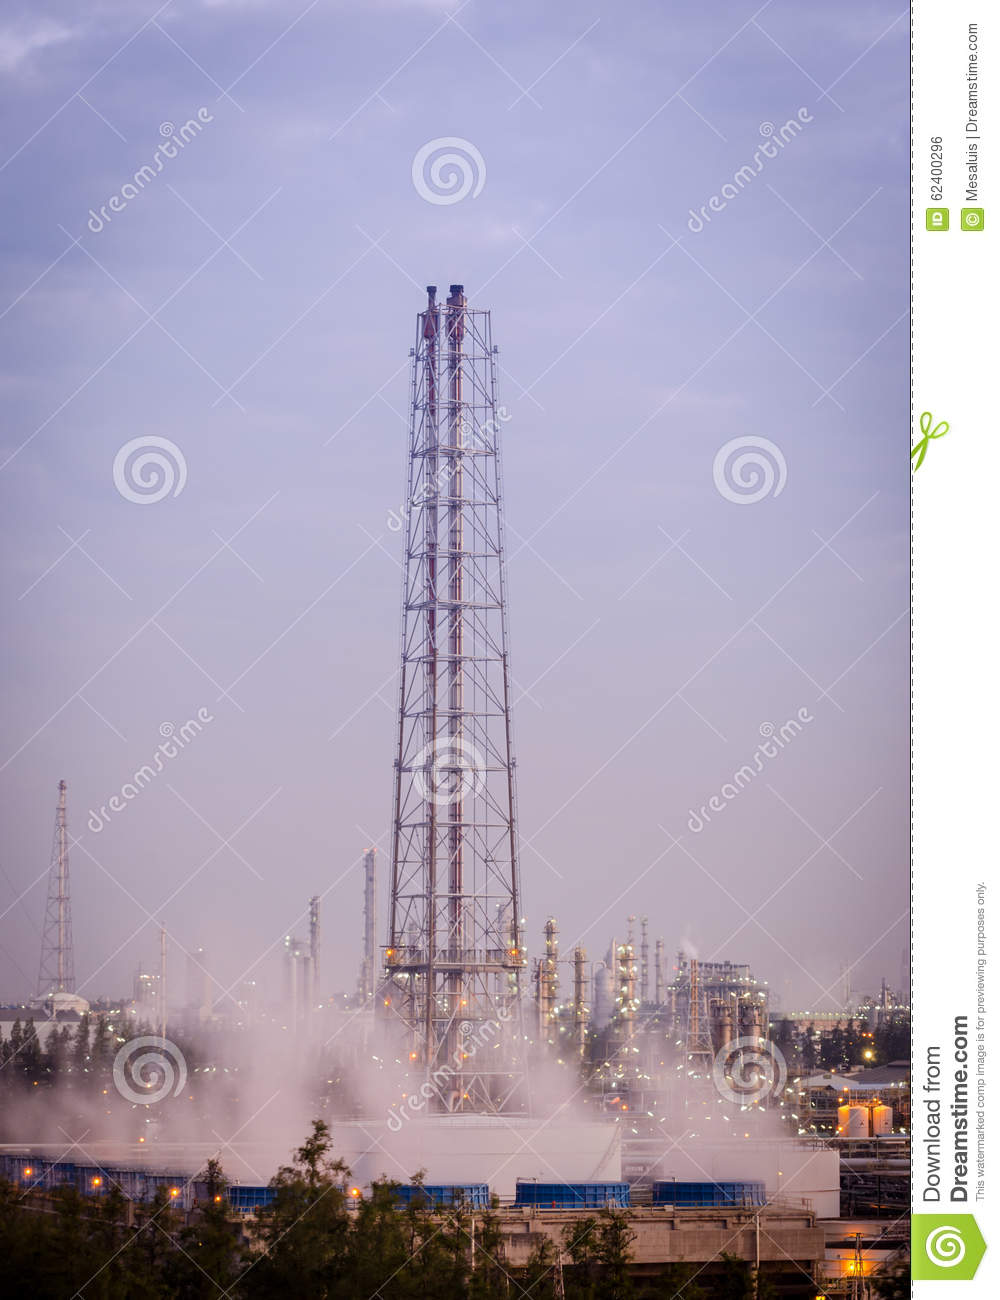 Flare Stack At Oil Refinery Stock Photo - Image of distillation